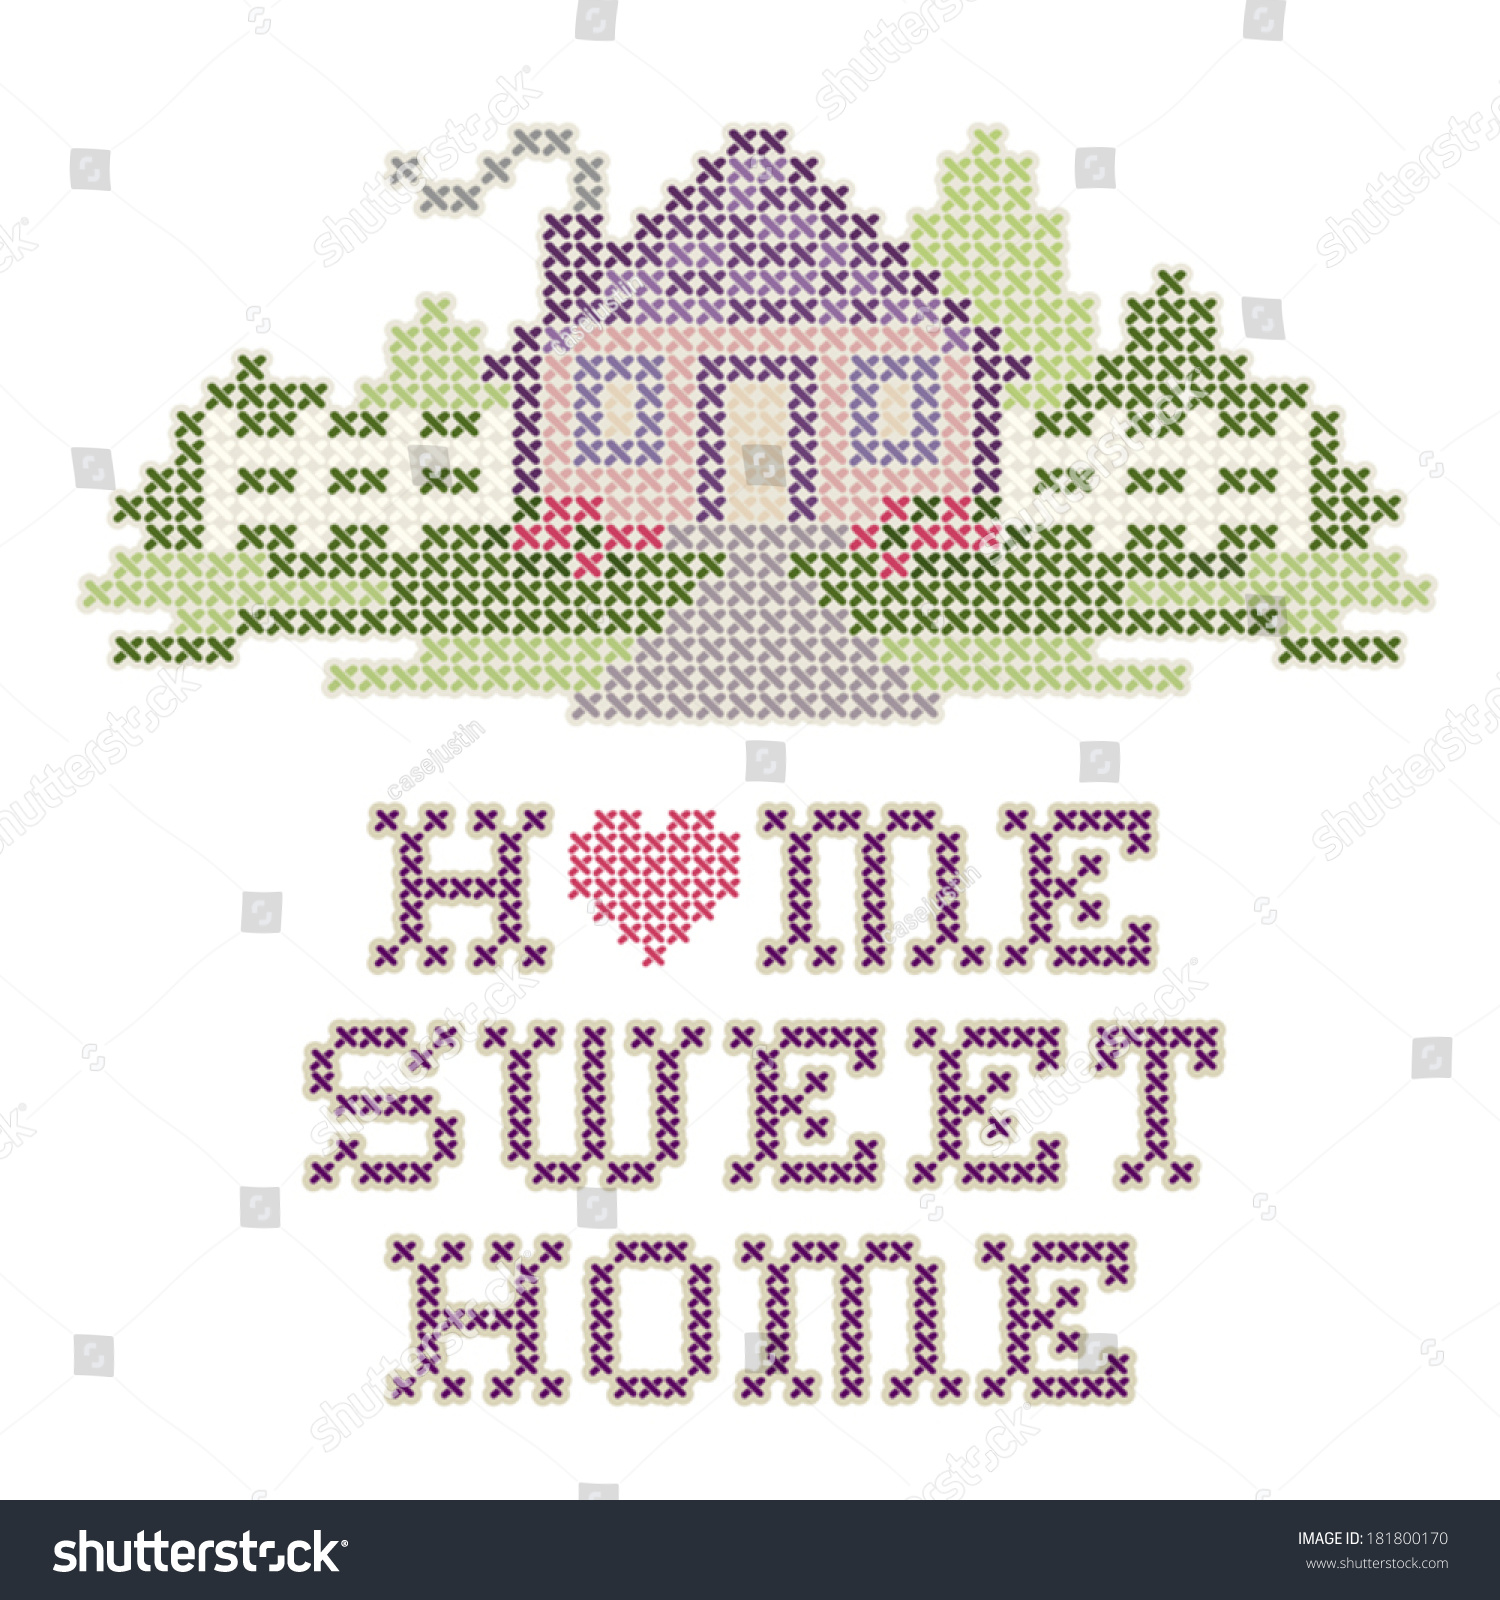 Home Sweet Home Embroidery Cross Stitch Stock Photo (Photo, Vector ...